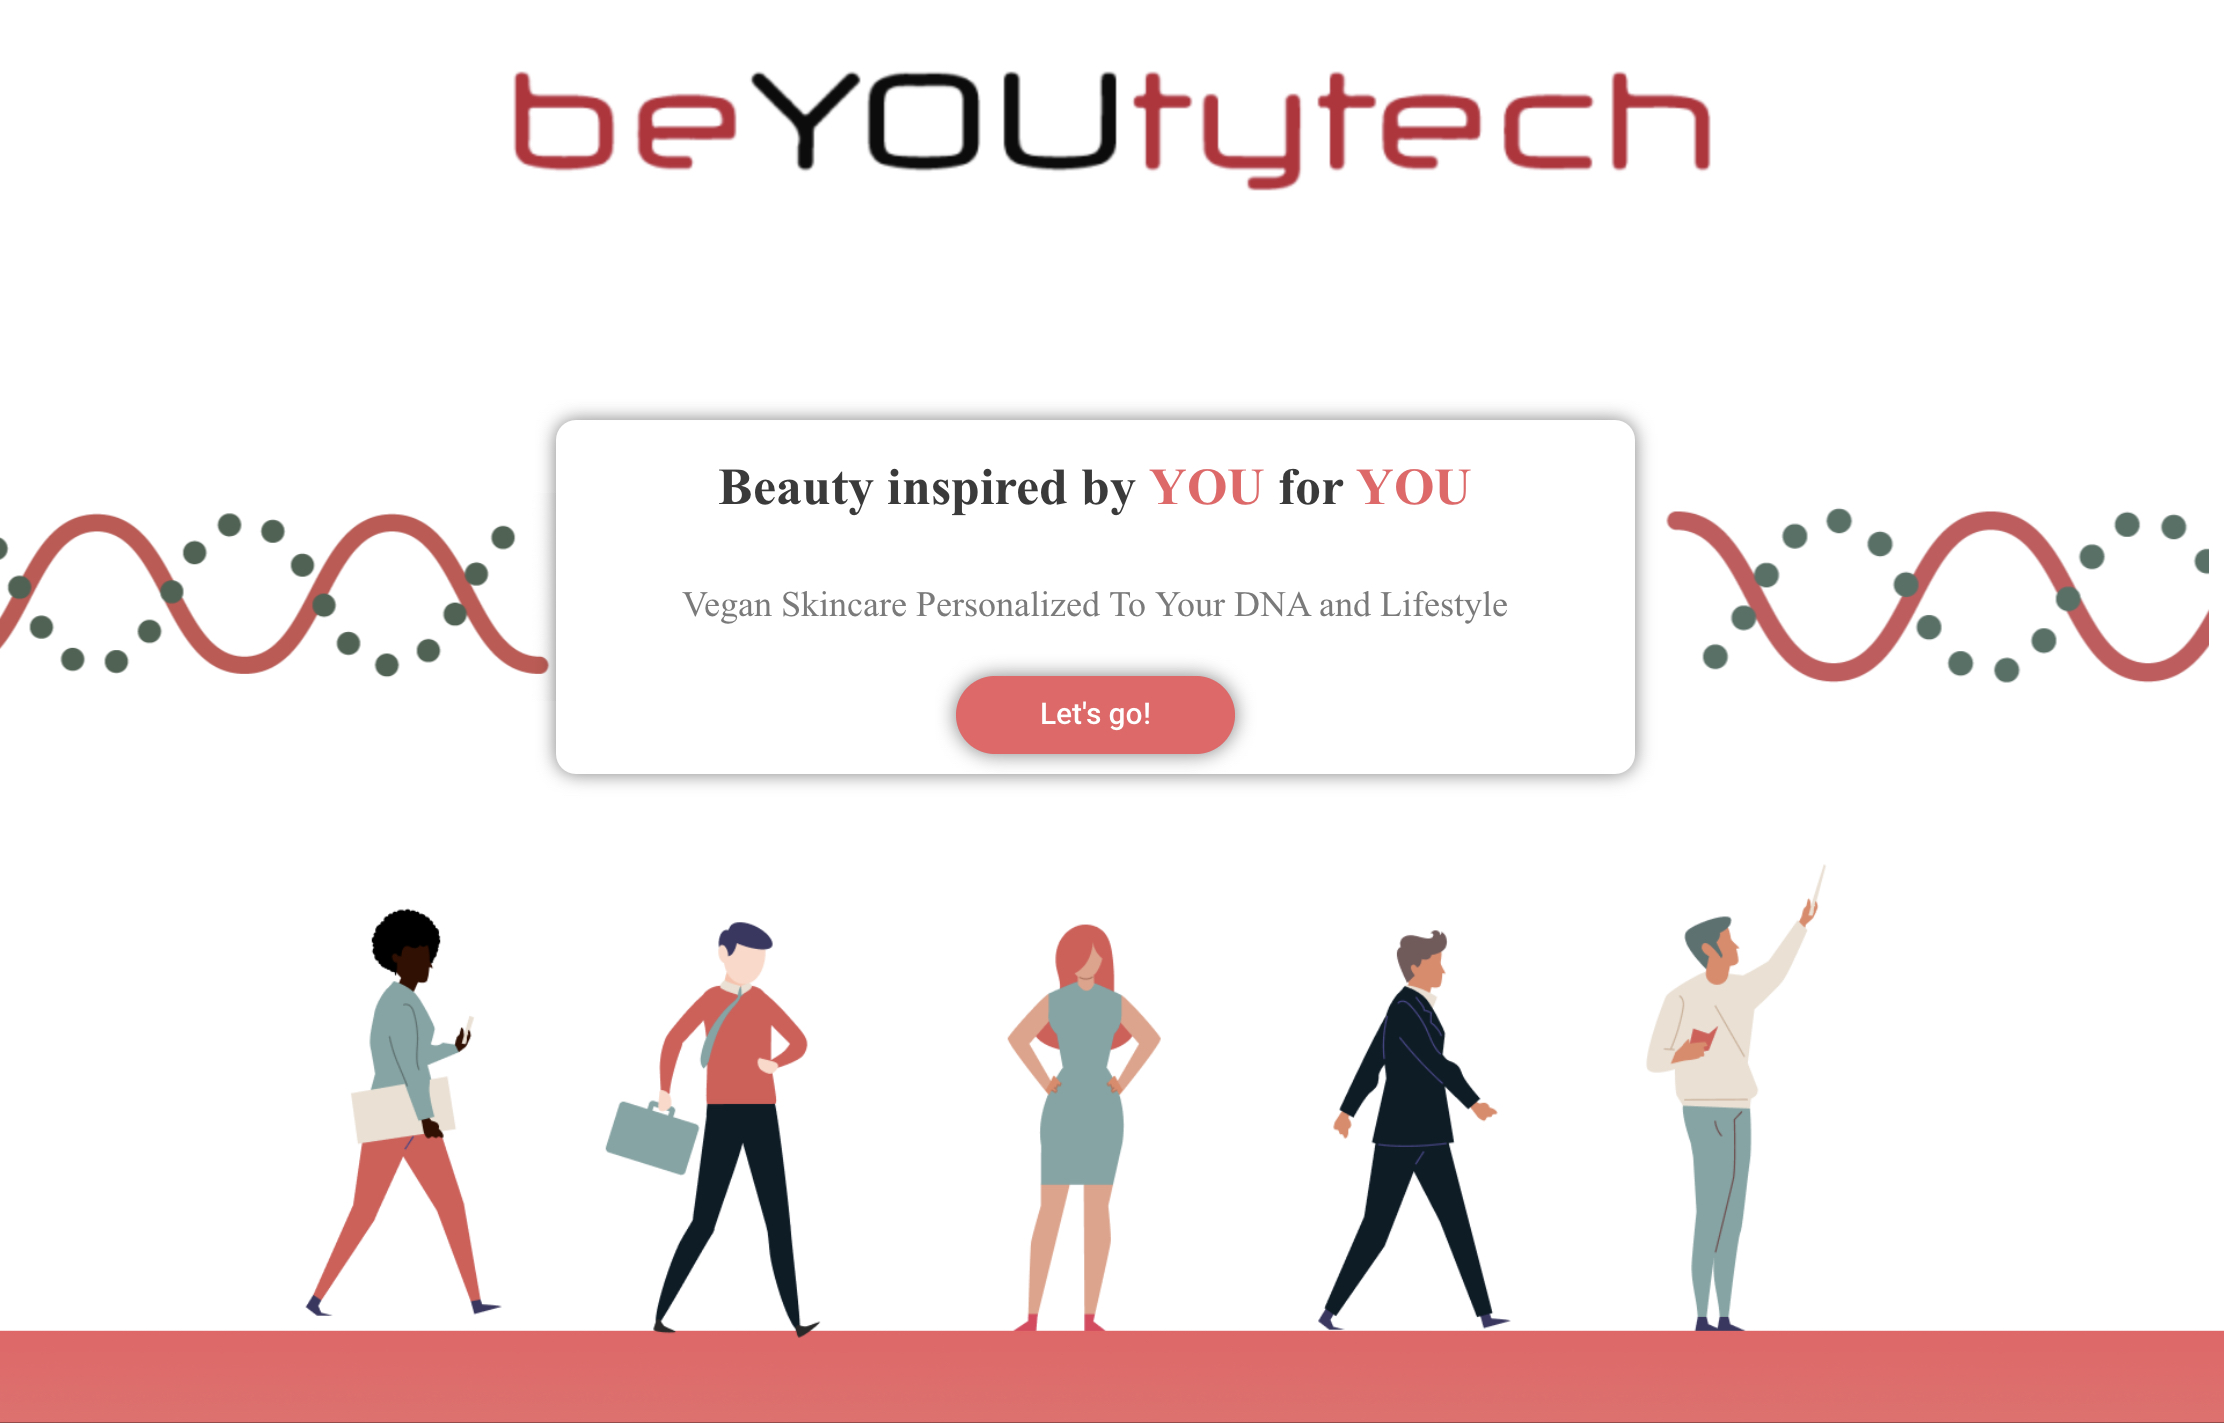 Beyoutytech - Founded by Nicole Feraji, Beyoutytech is developing a personalized skincare system tailored to your biology and lifestyle. We believe the future of beauty is accessible, effective and personalized.Learn More